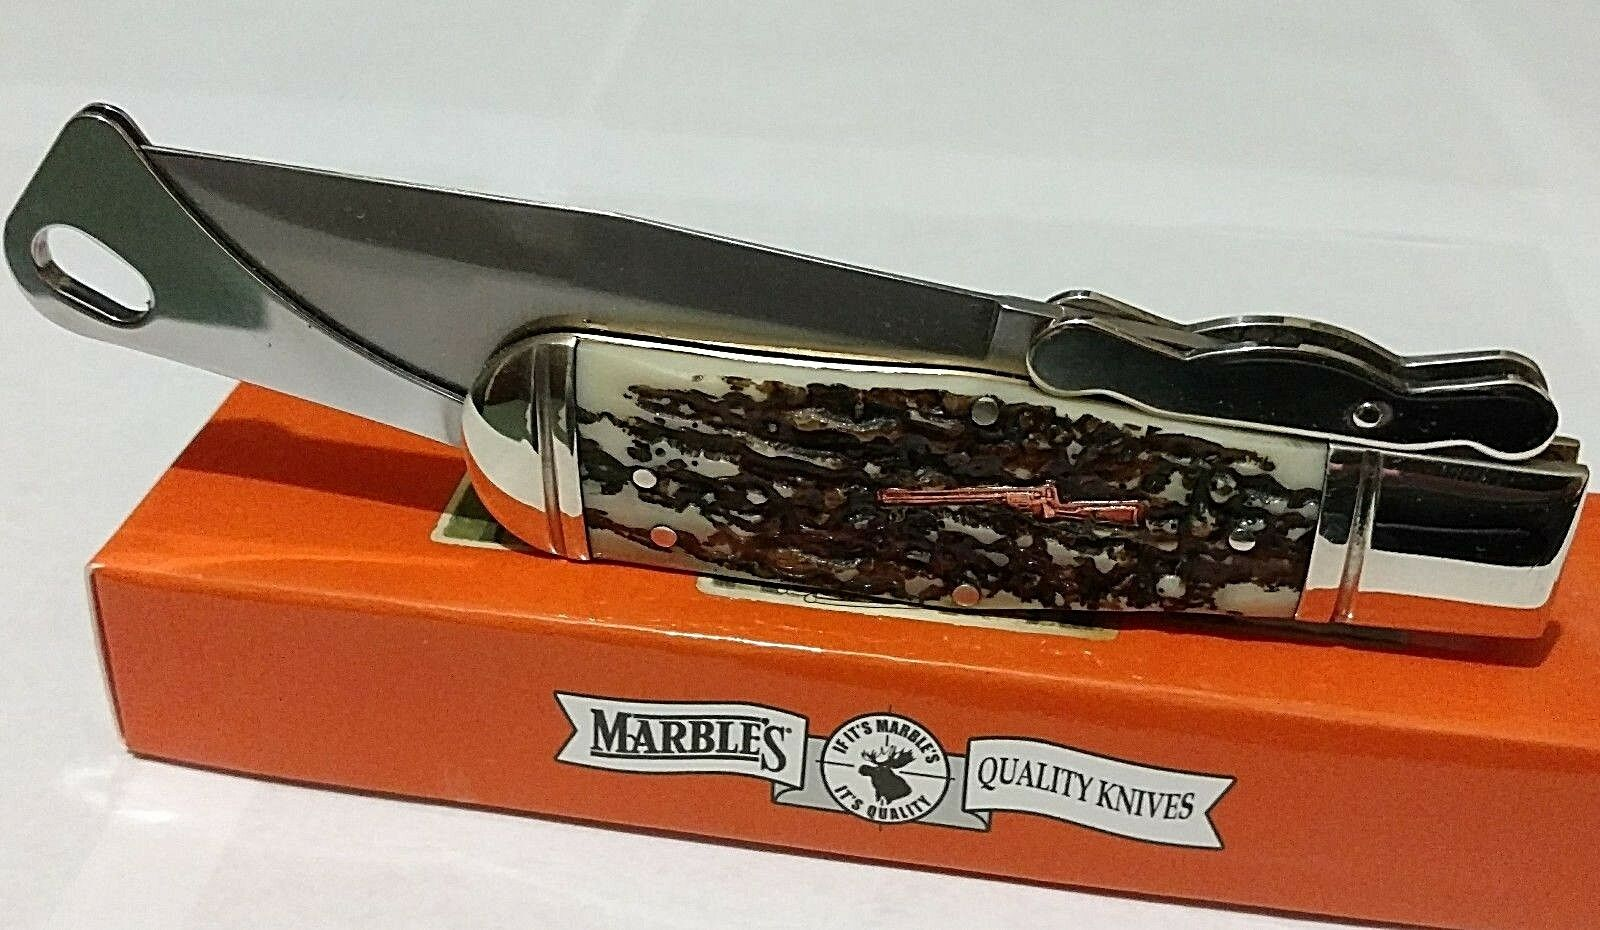 MARBLES STAG BOWIE HUNTING POCKET KNIFE W/ CUSTOM RIFLE SHIELD !!!